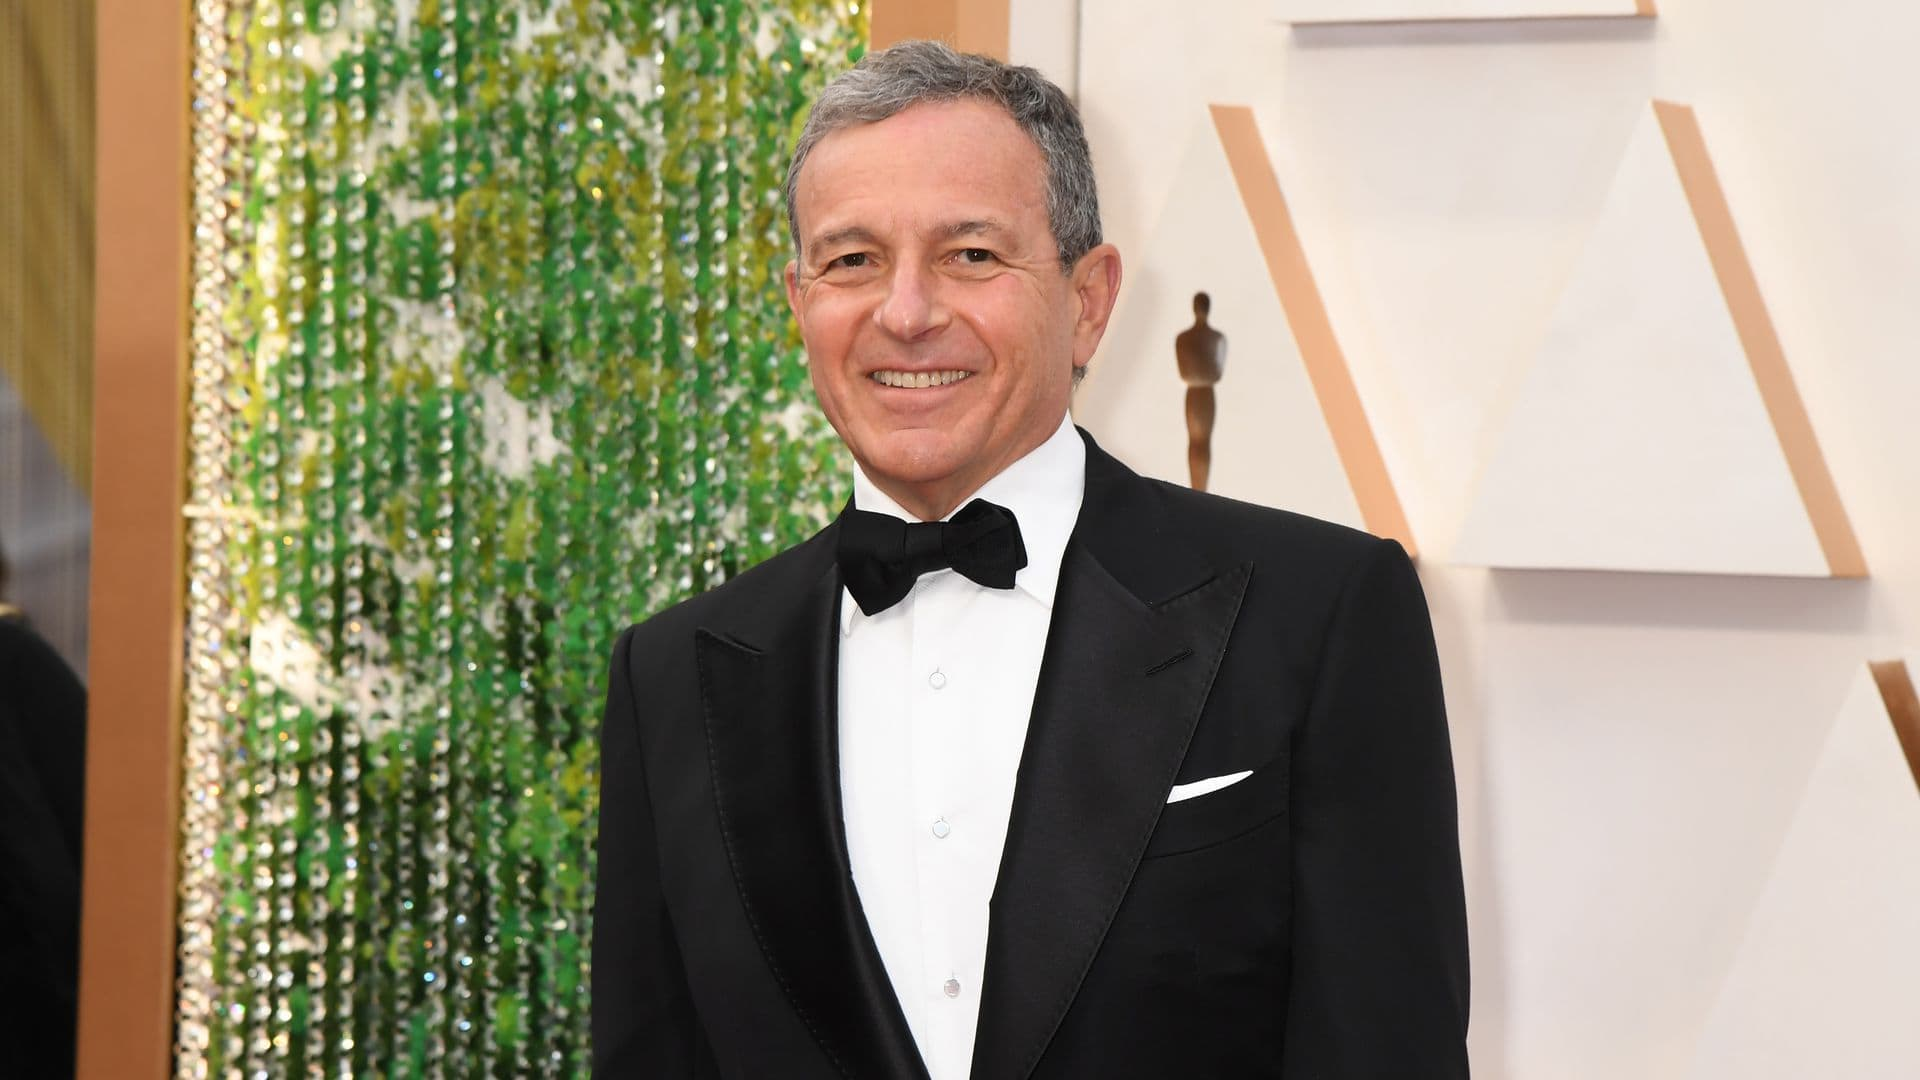 Bob Iger steps down as CEO of Disney, Position passed to former Disney Parks chairman Bob Chapek 2